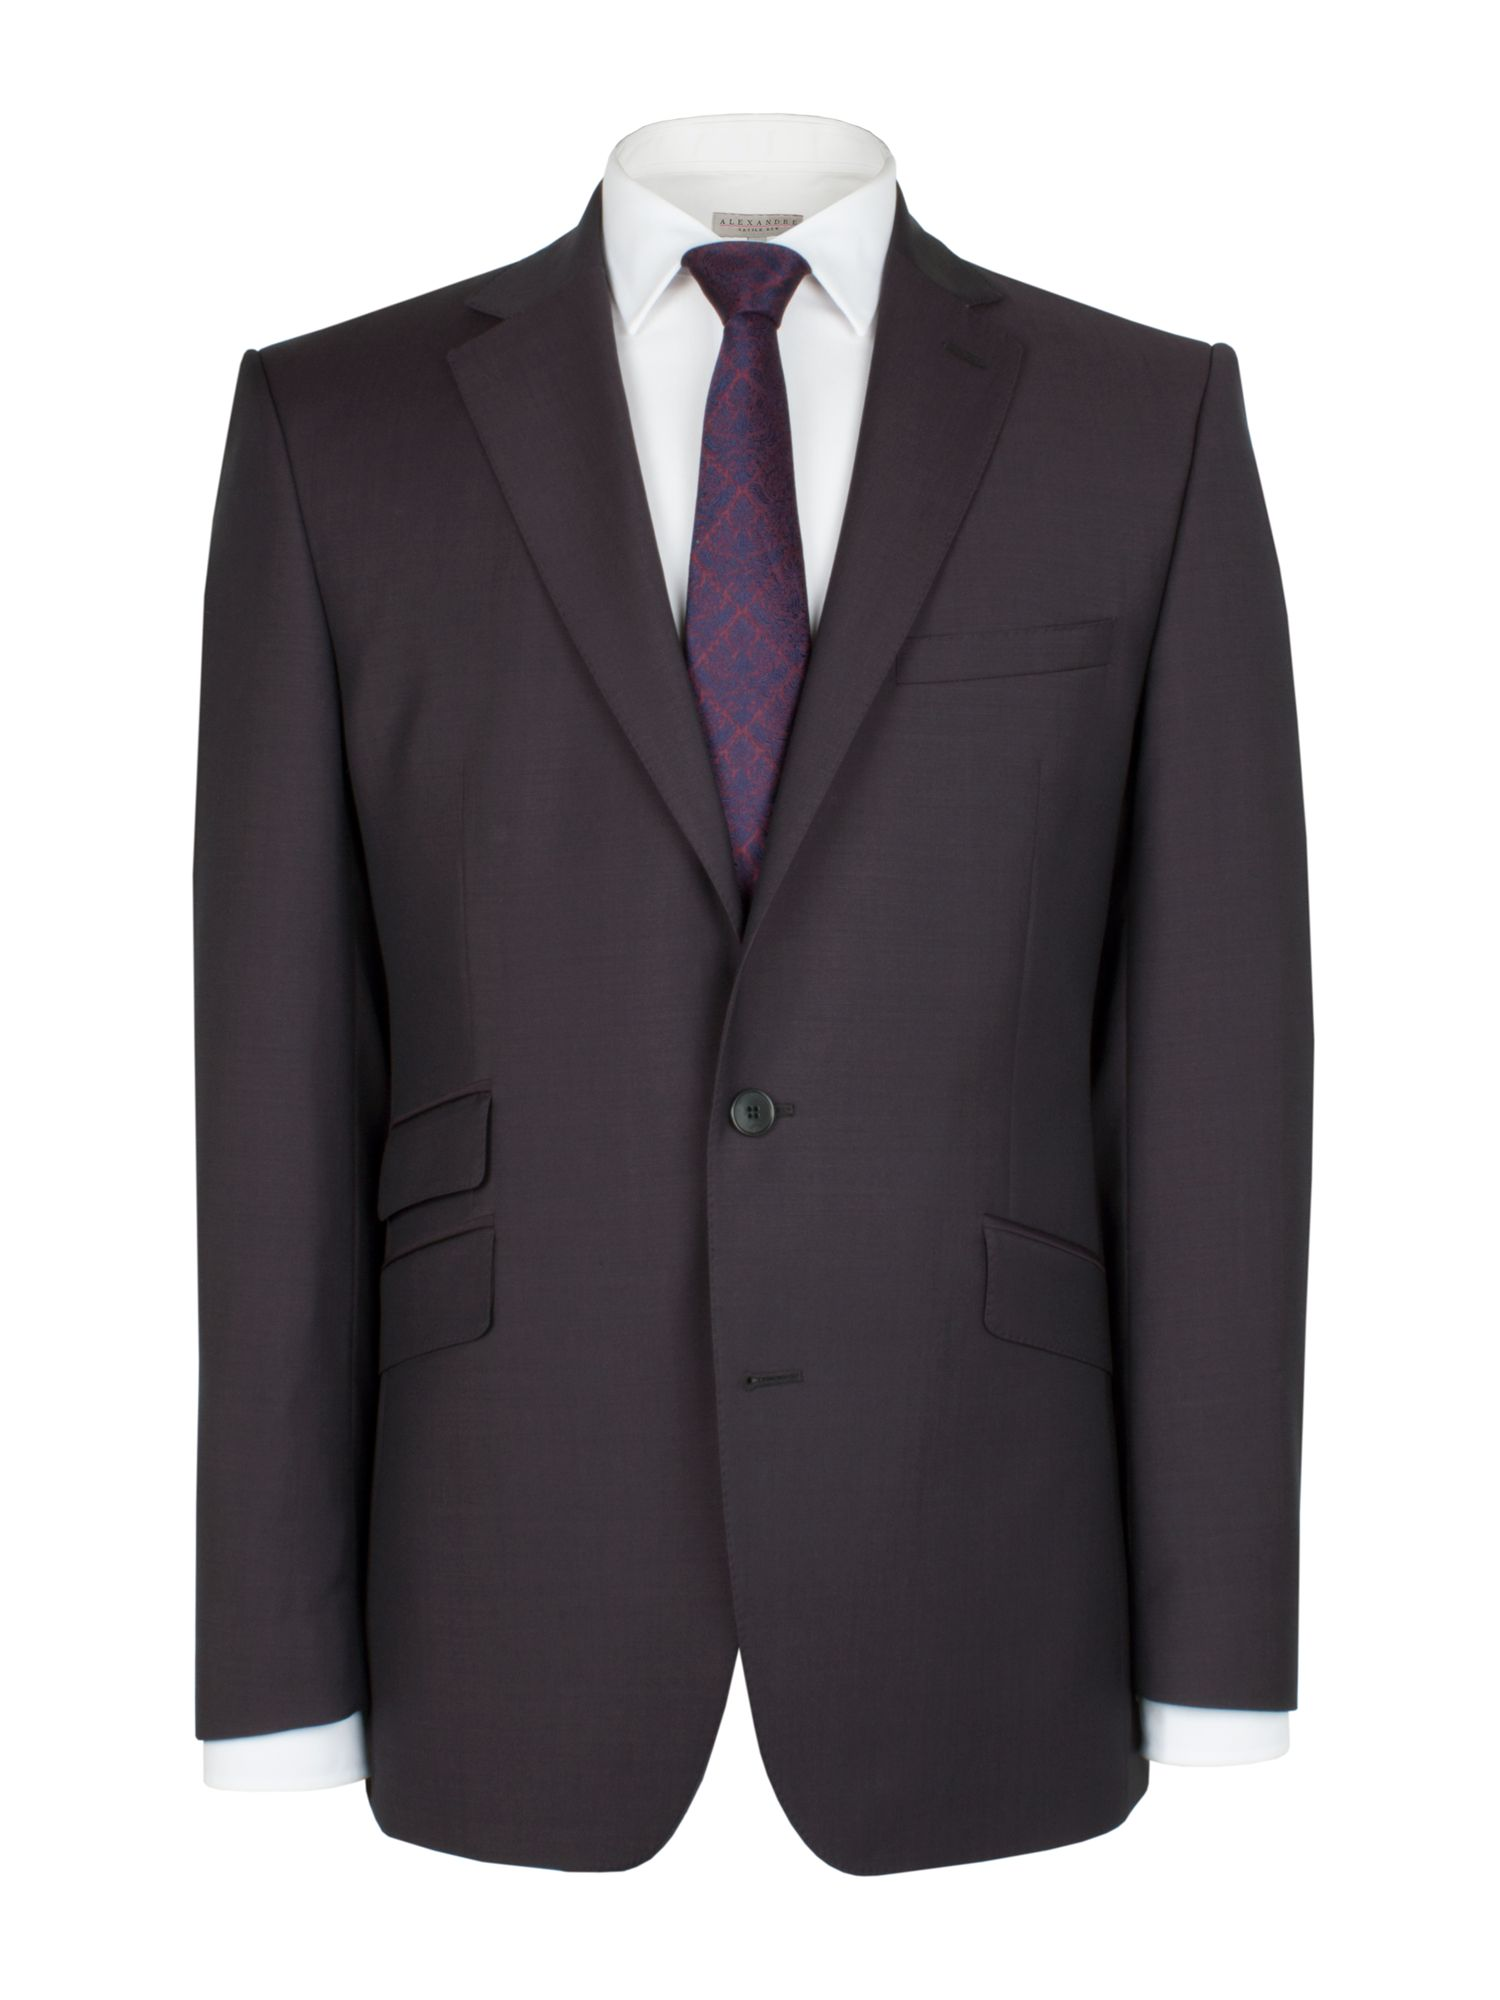 Aubergine tonic jacket